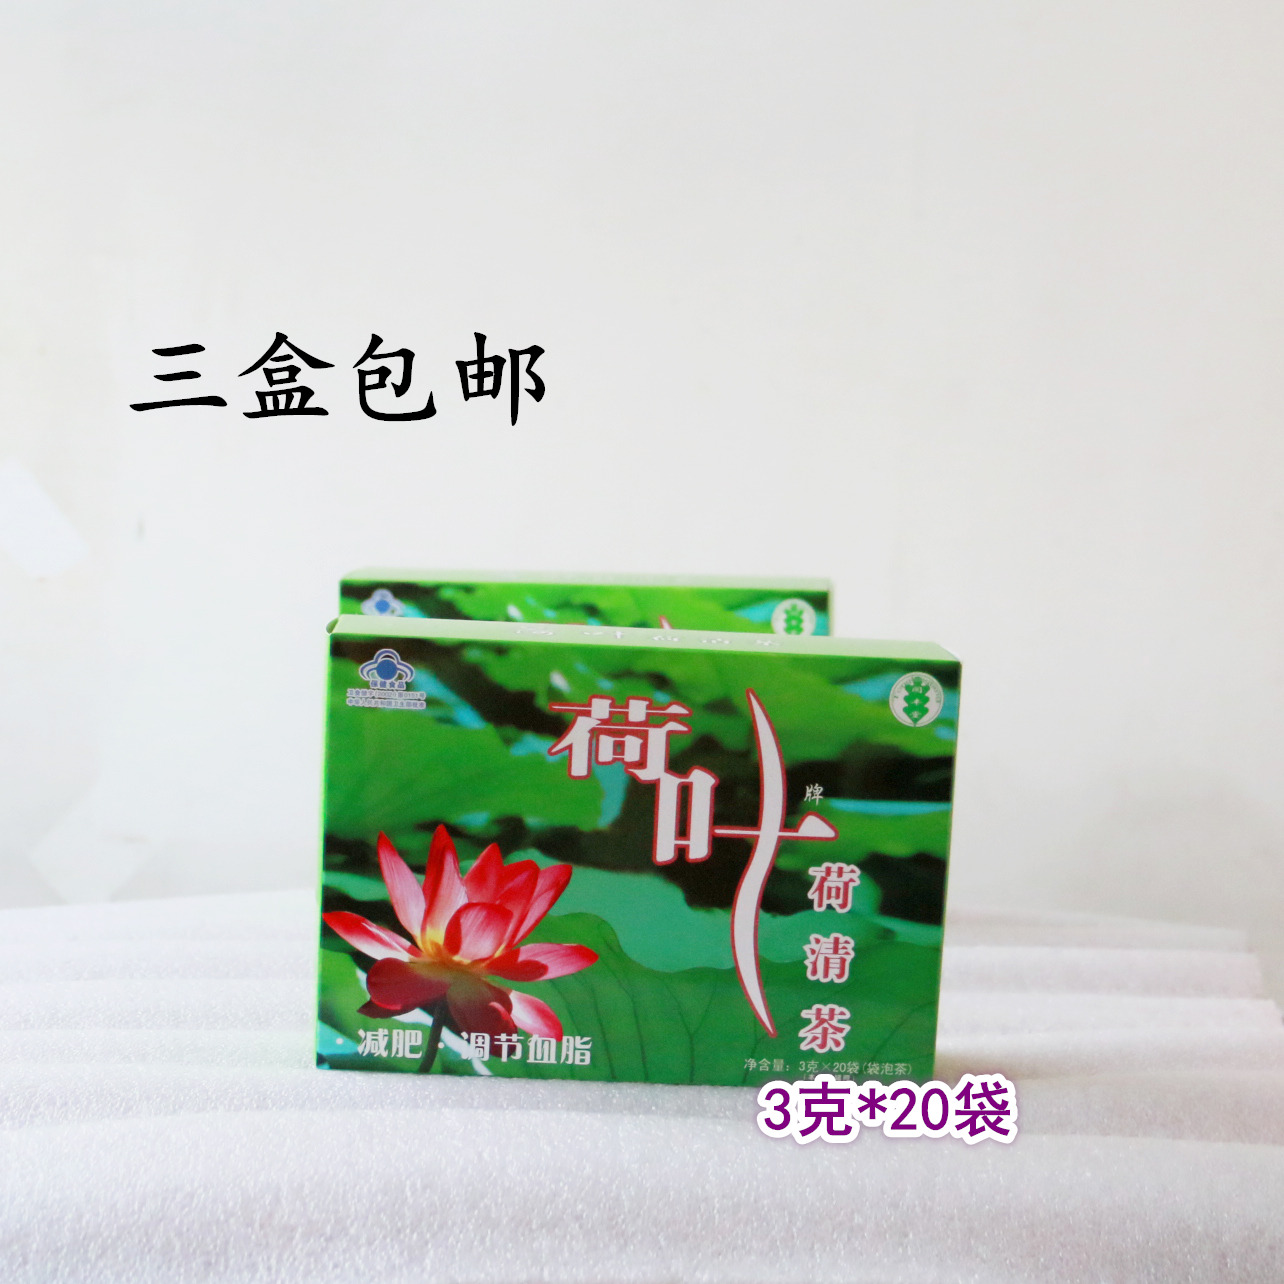 Nineteen New Goods Tongfengtang Lotus Leaf Tea and Lotus Green Tea (Three Boxes of Packaged Mails)